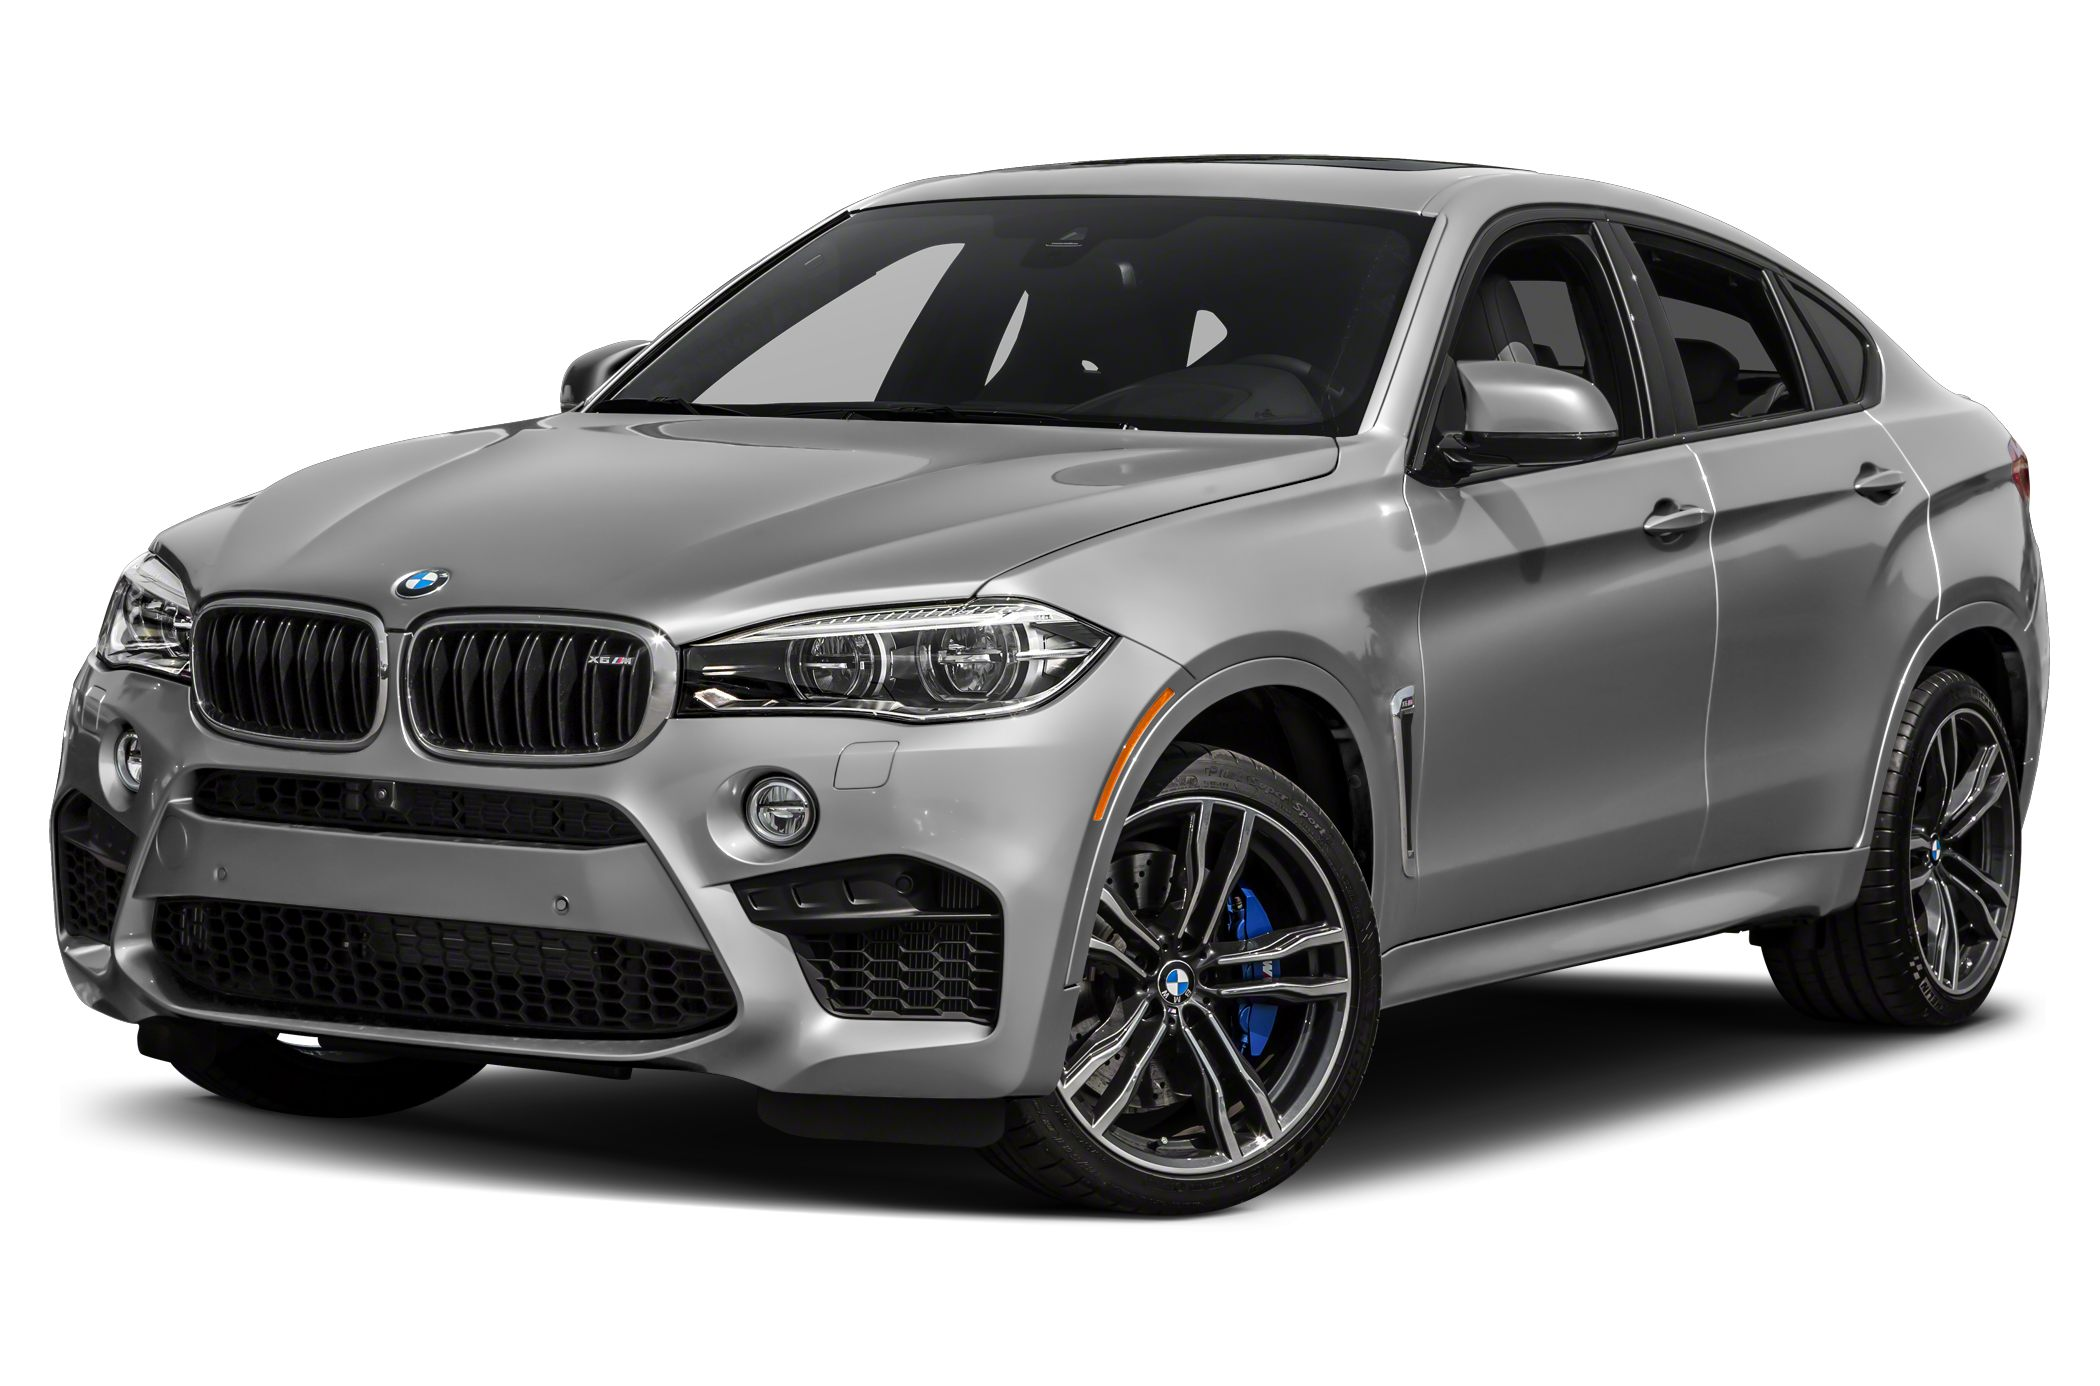 2017 BMW X6 M Specs and Prices